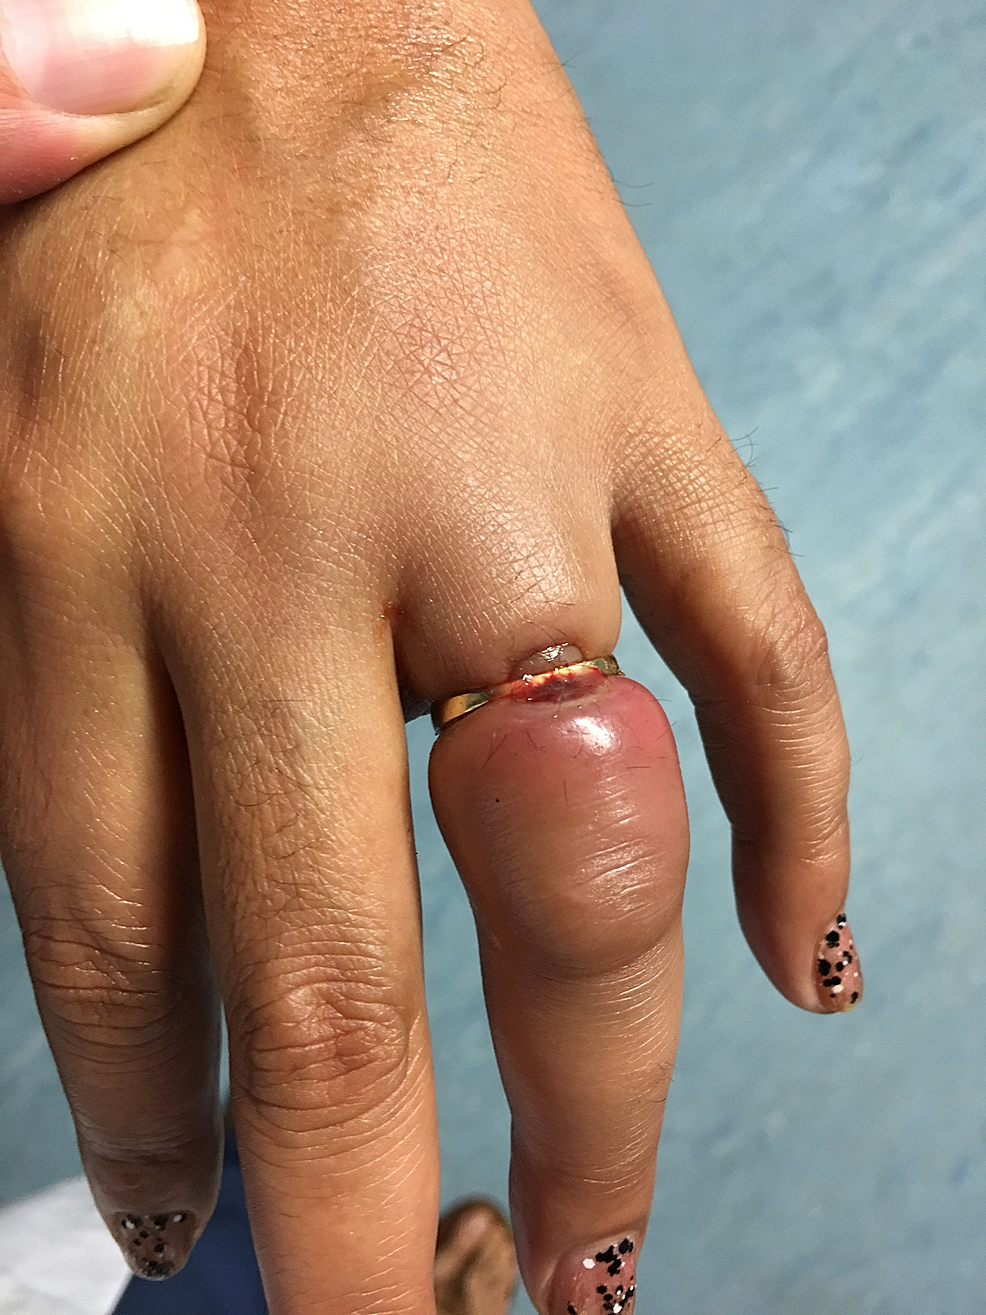 Swollen-and-painful-left-ring-finger-on-presentation-and-prior-to-ring-removal